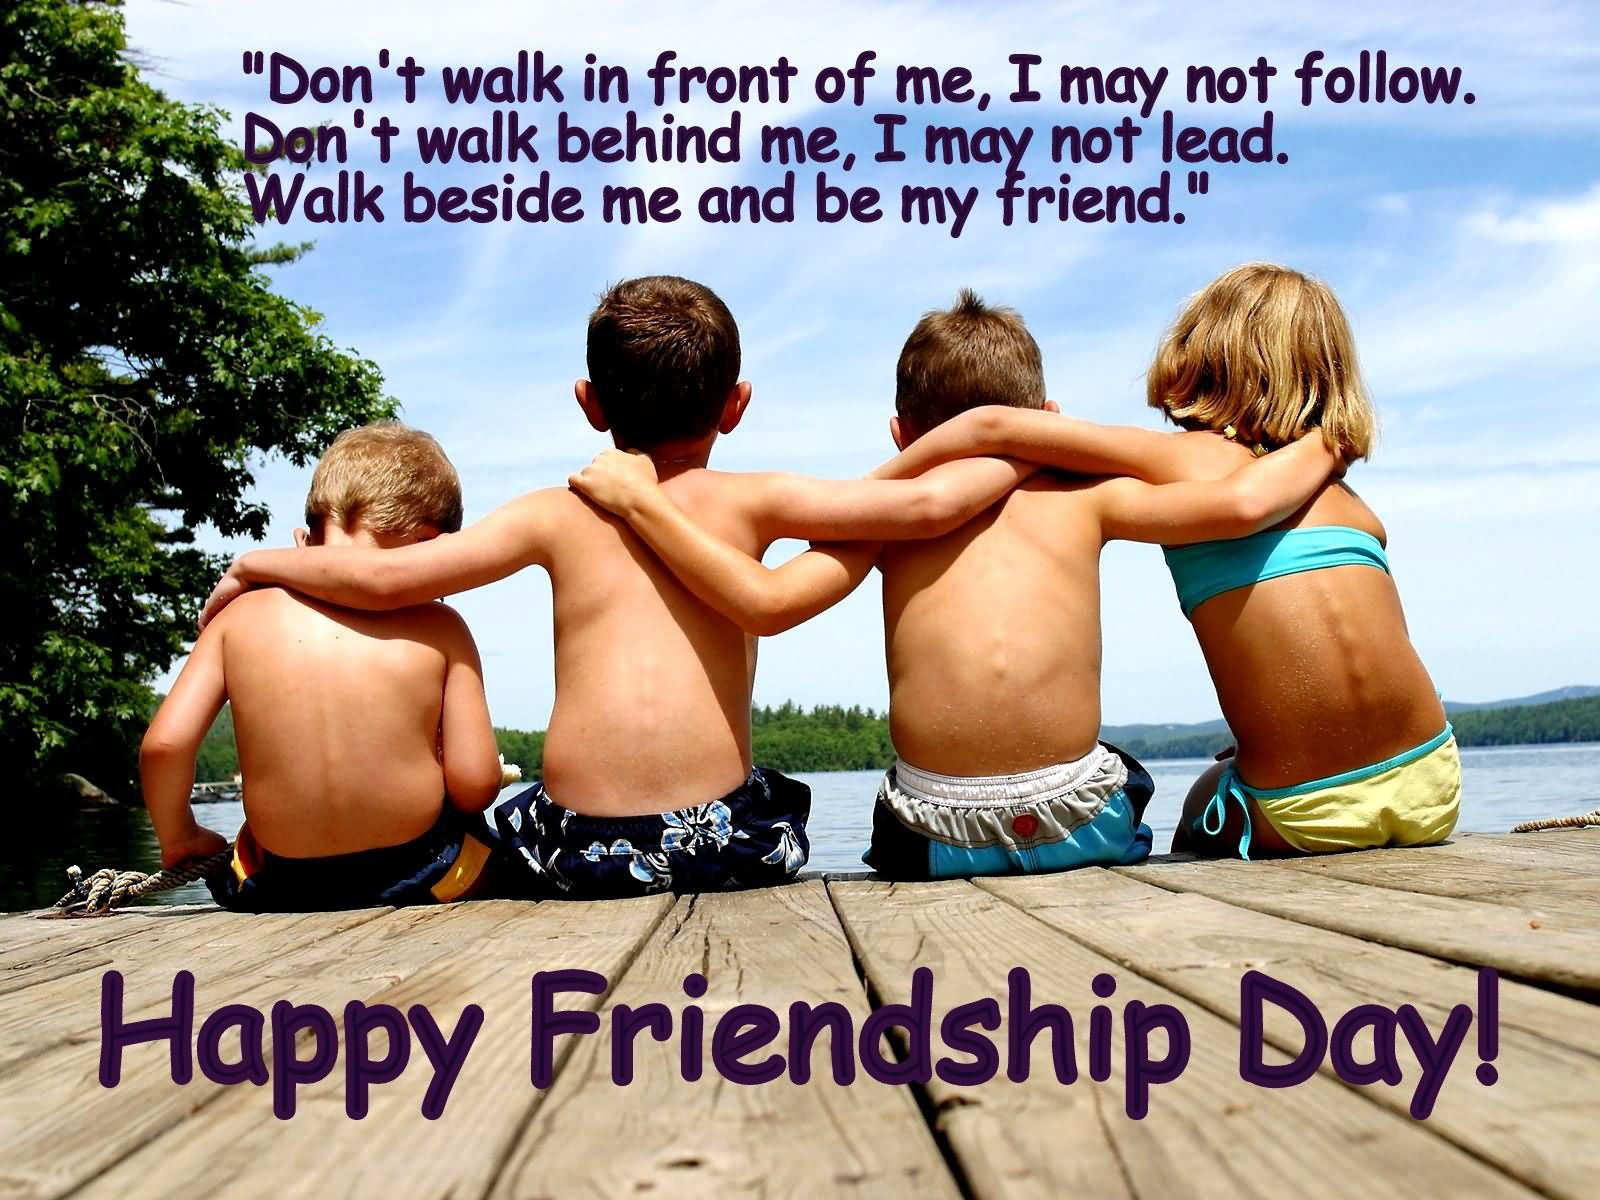 Friendship Day Quotes Beach Images